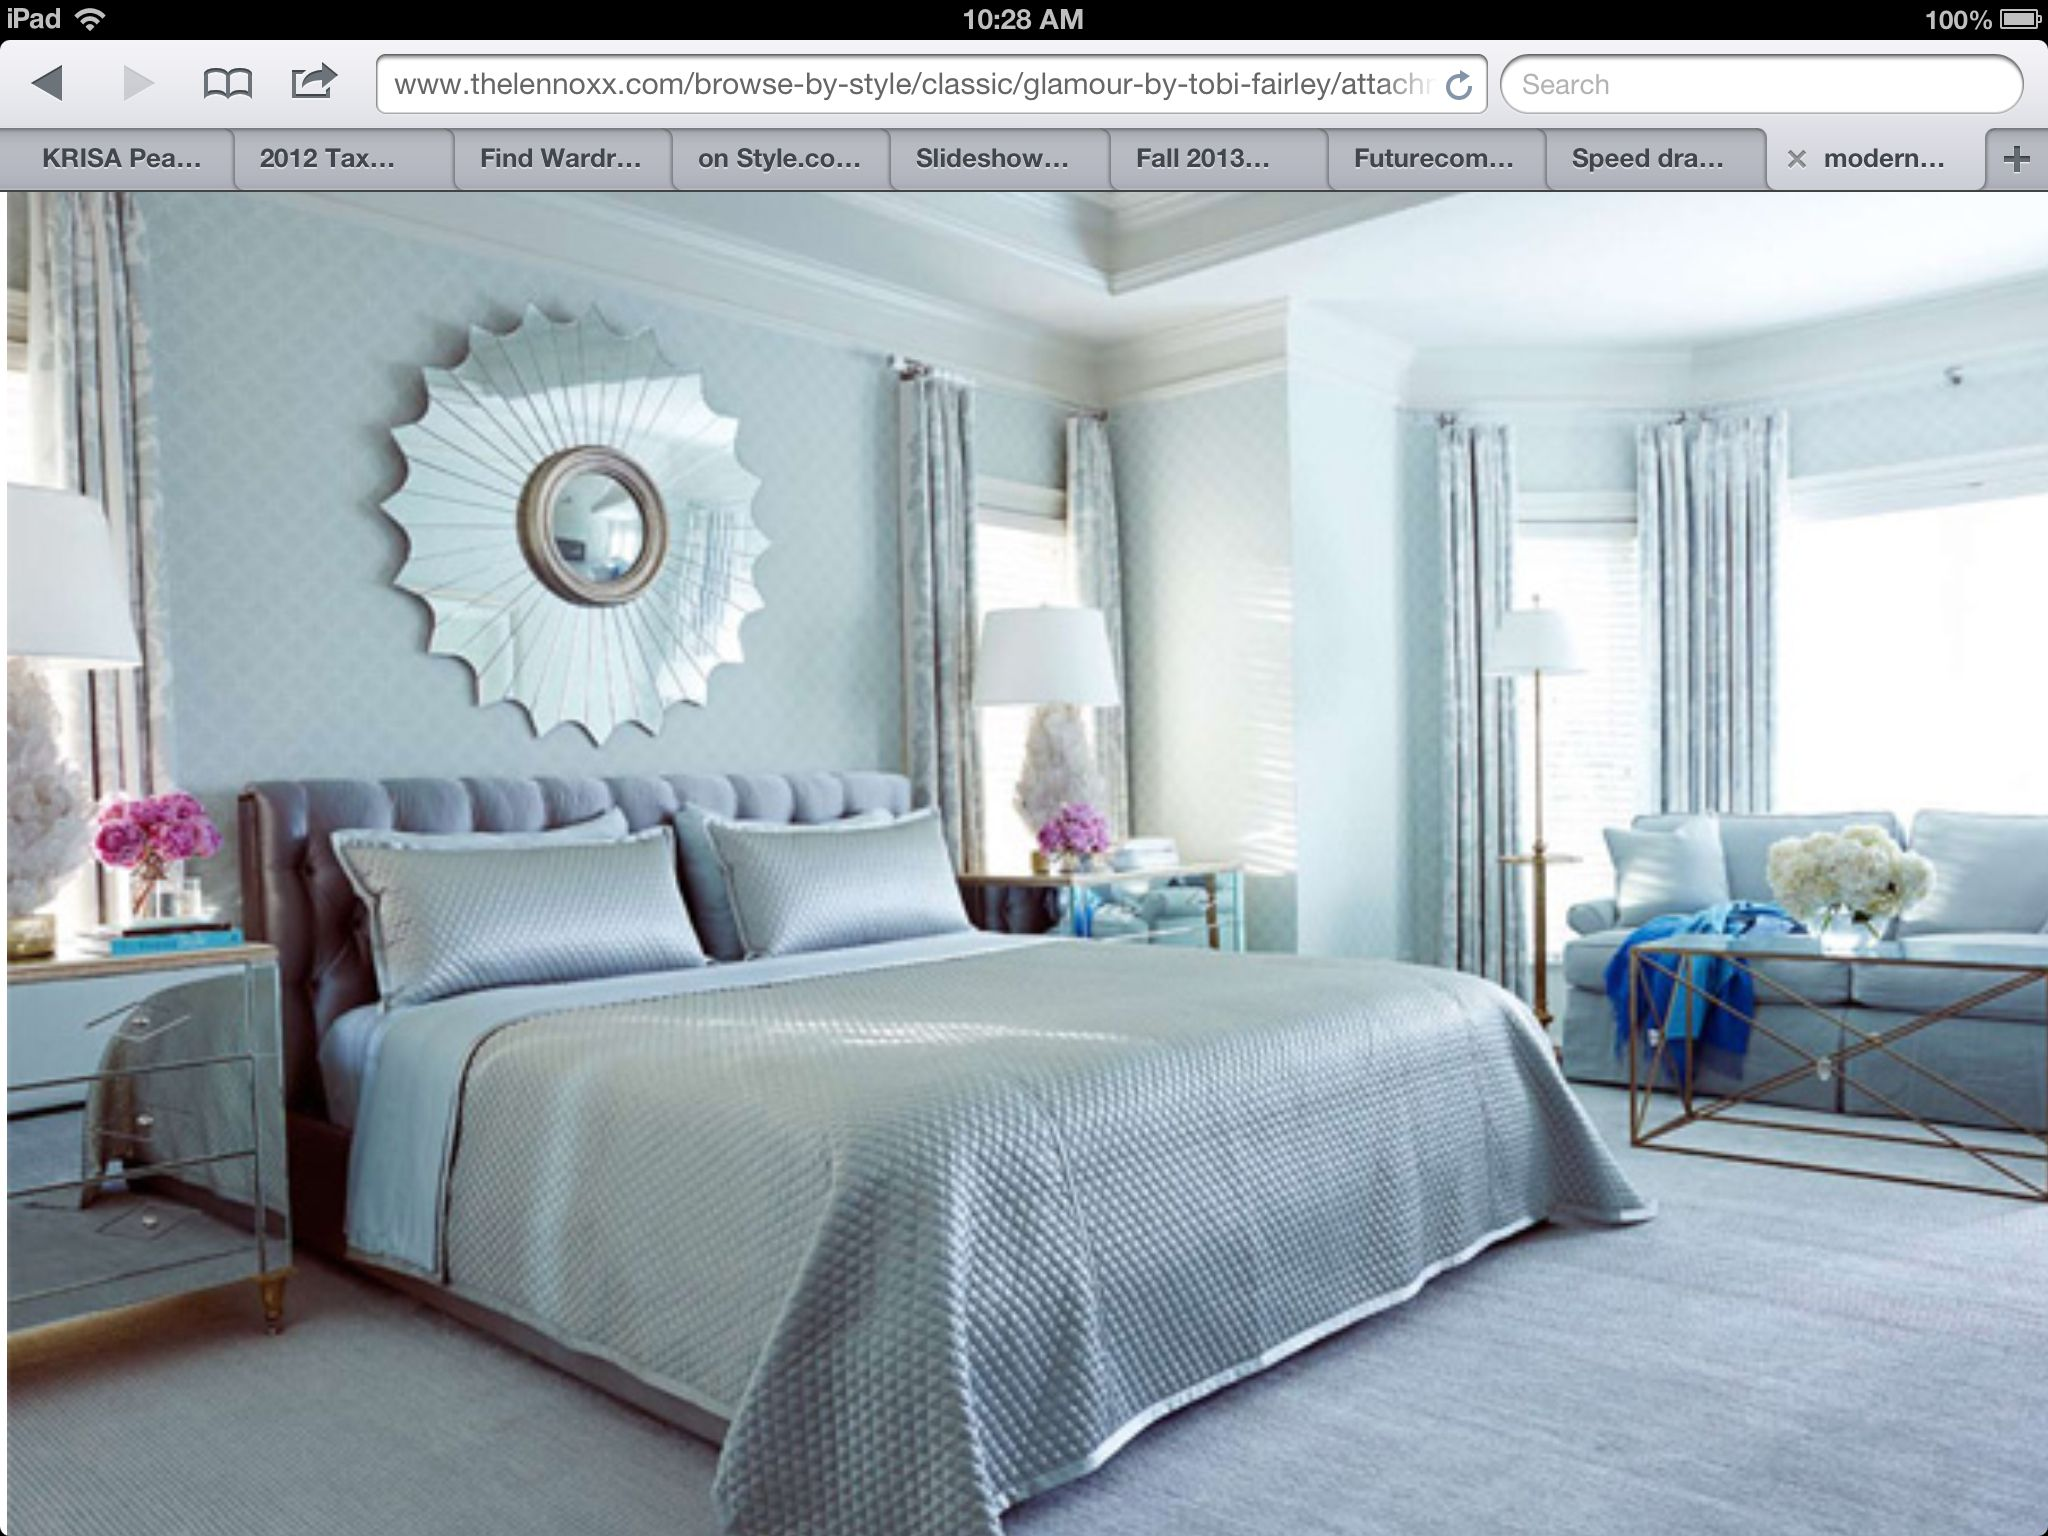 Light Blue And White Bedroom Decorating Ideas Part - 28: Modern Chic Light Blue Silver Bedroom Design Sun Mirror Crystal Lamps